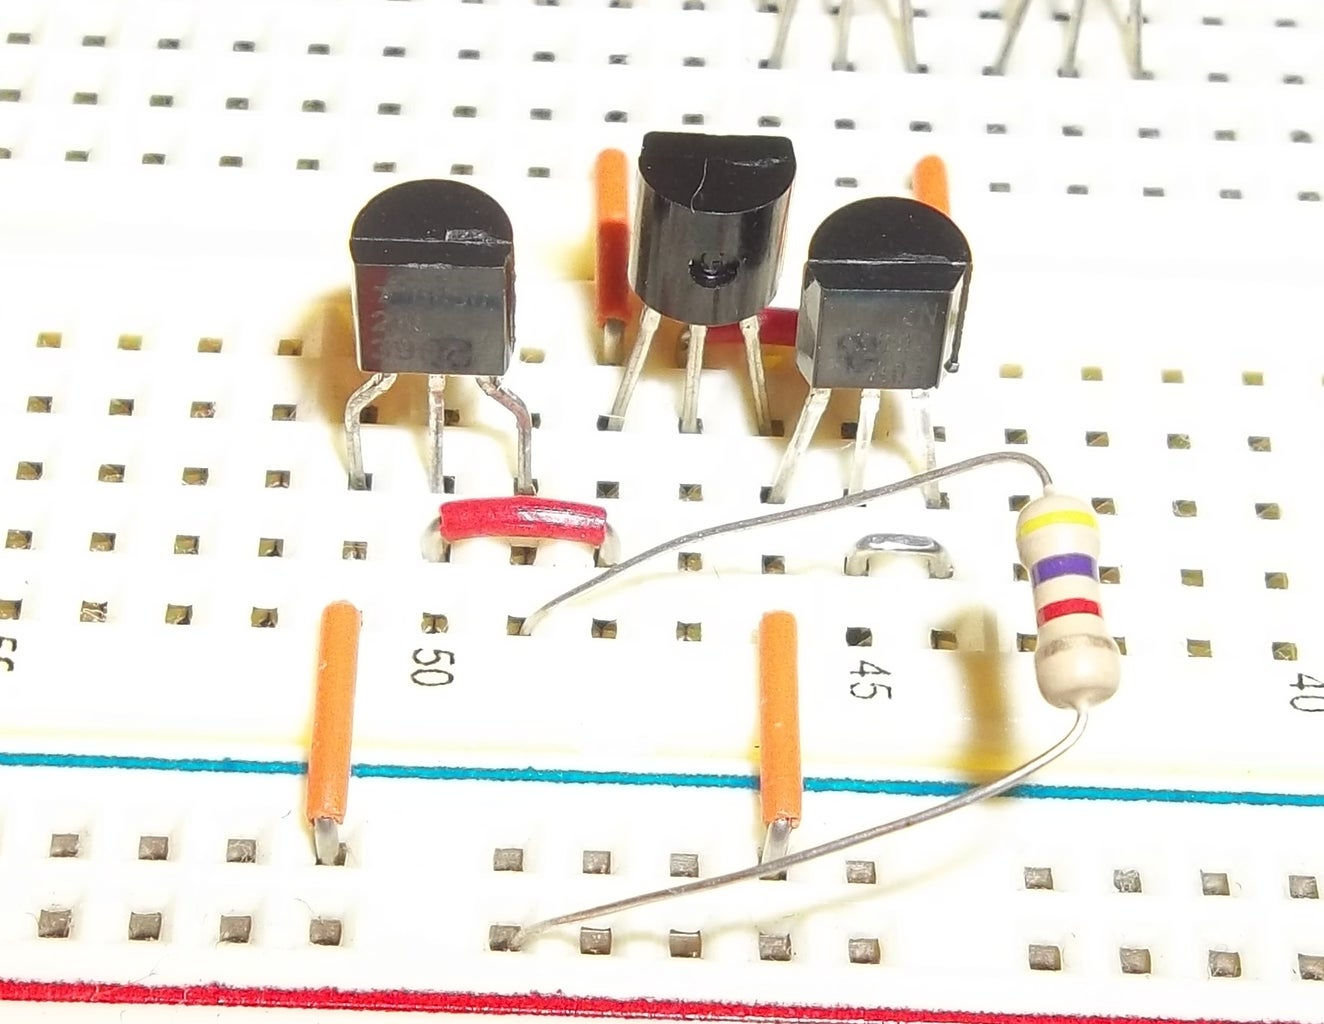 Building the Trigger Comparator